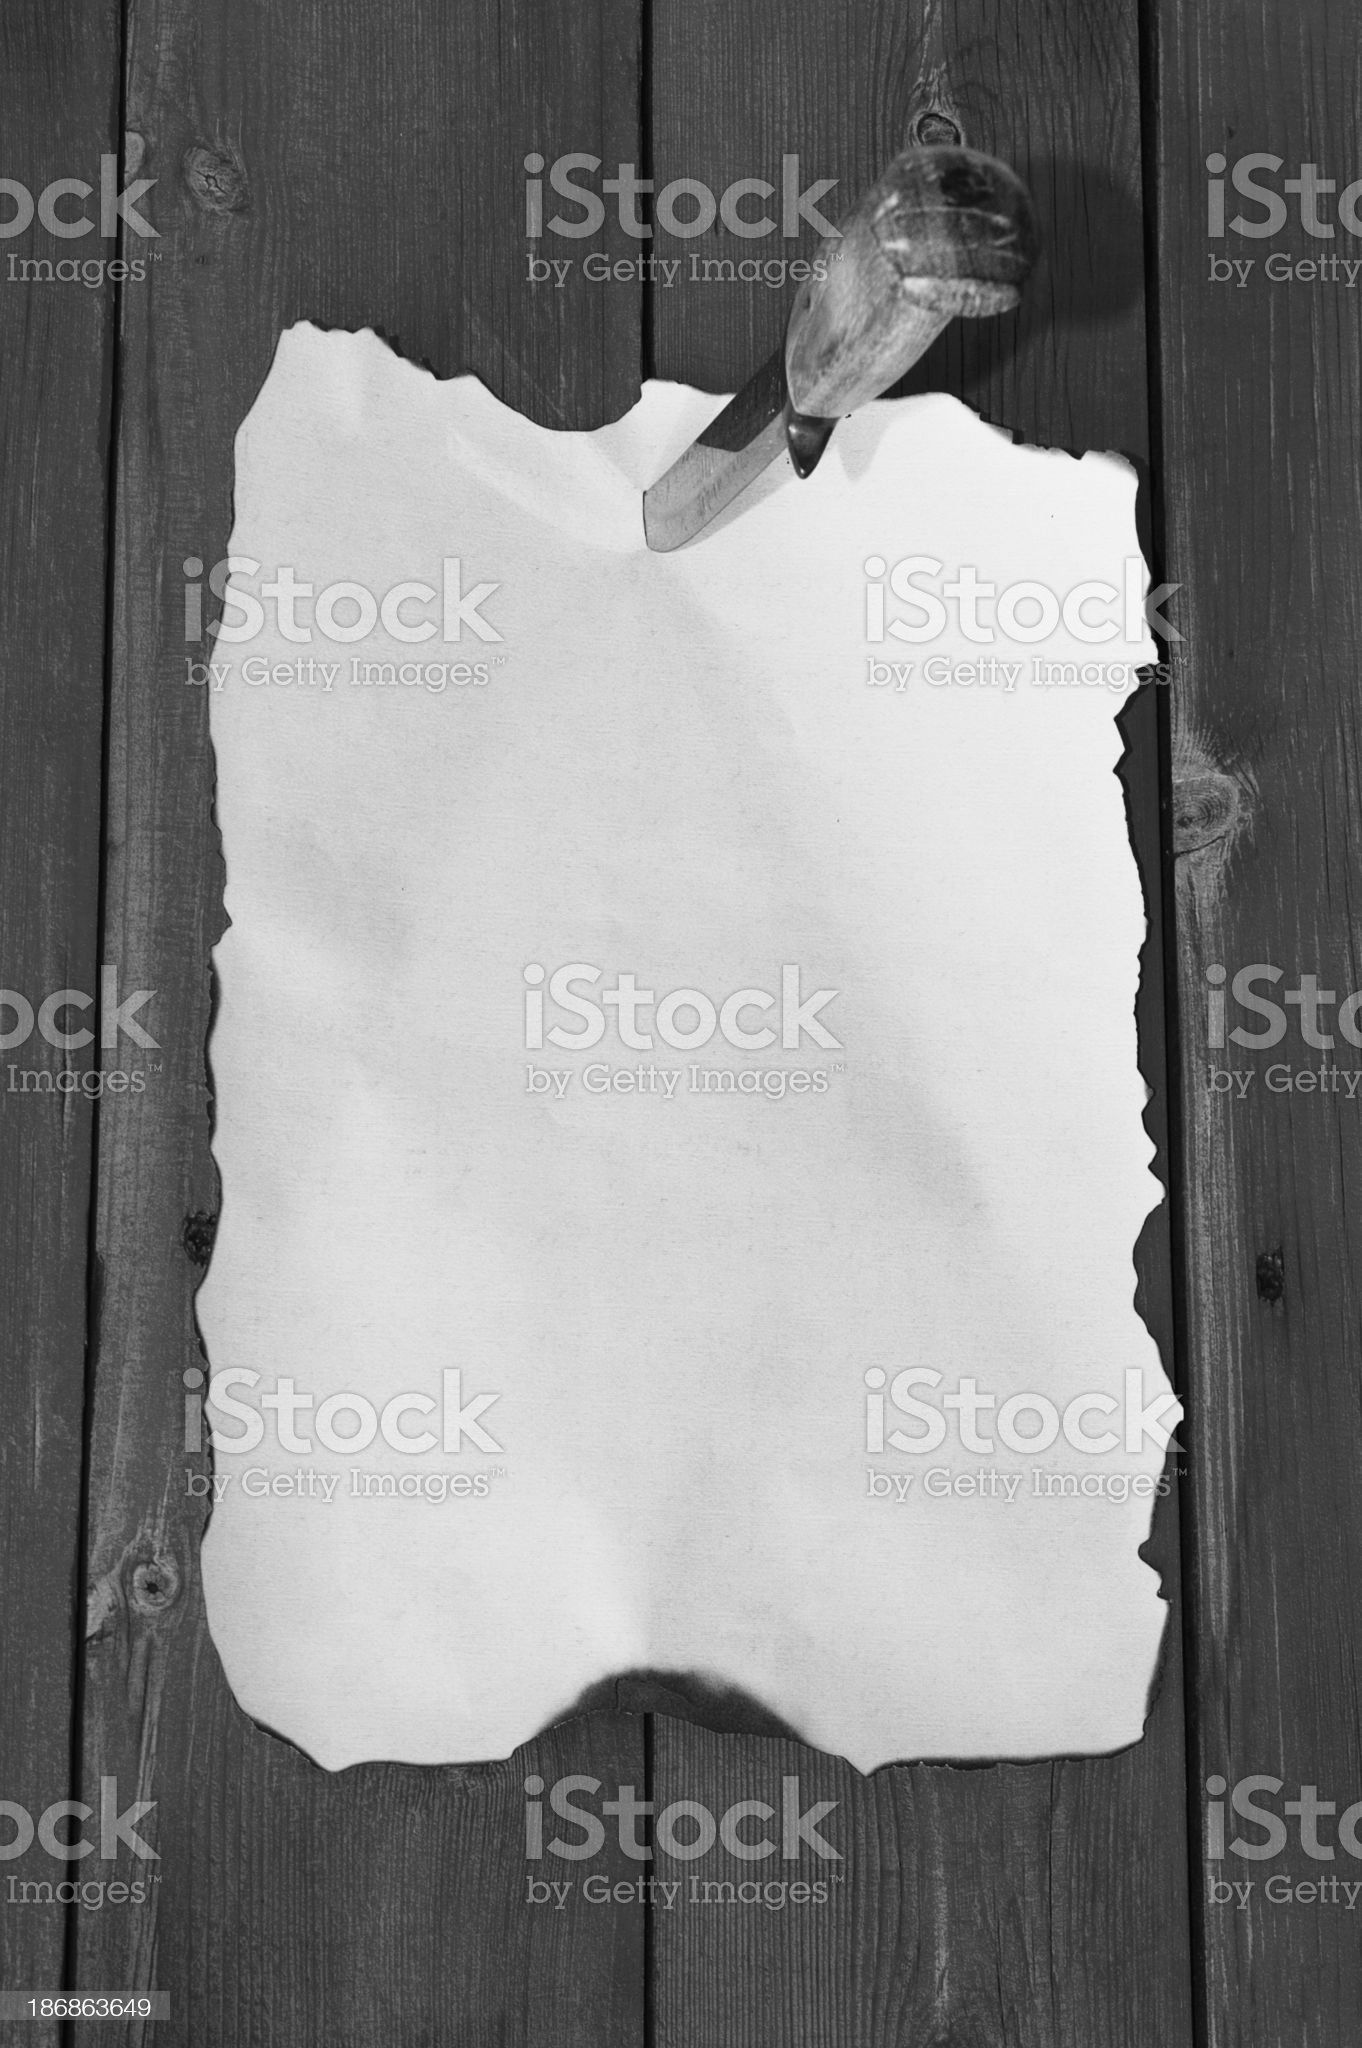 Pinned Paper B&W royalty-free stock photo